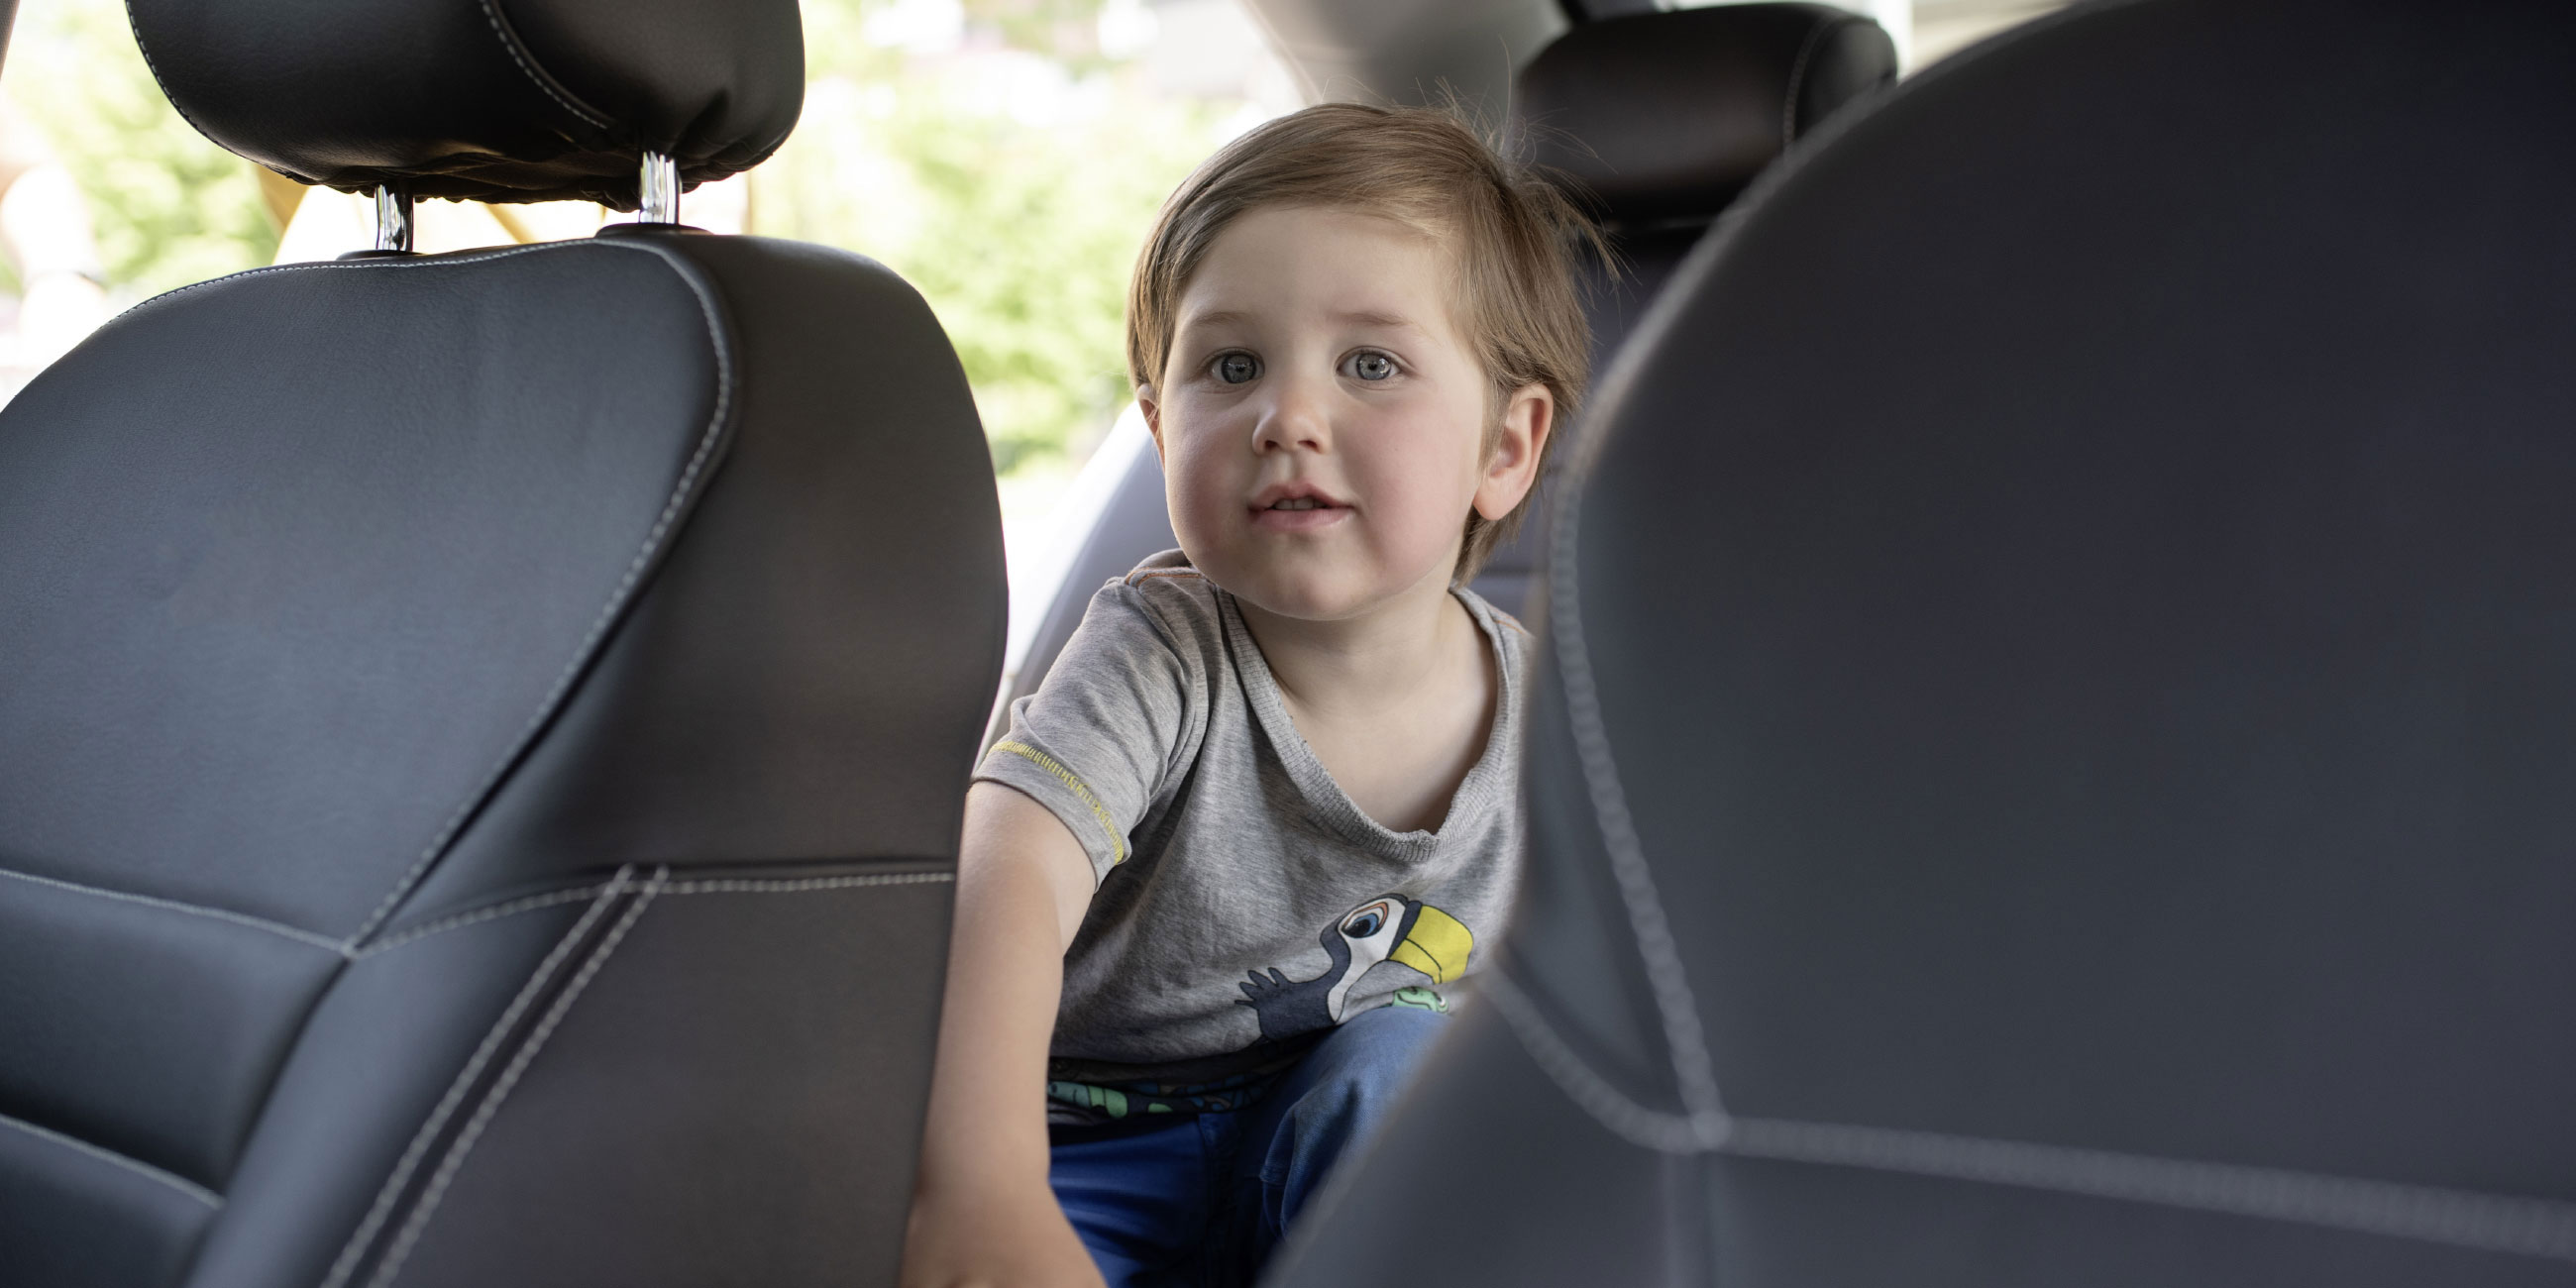 A small boy sits in the backseat of a TaxiPlus and smiles into the camera.